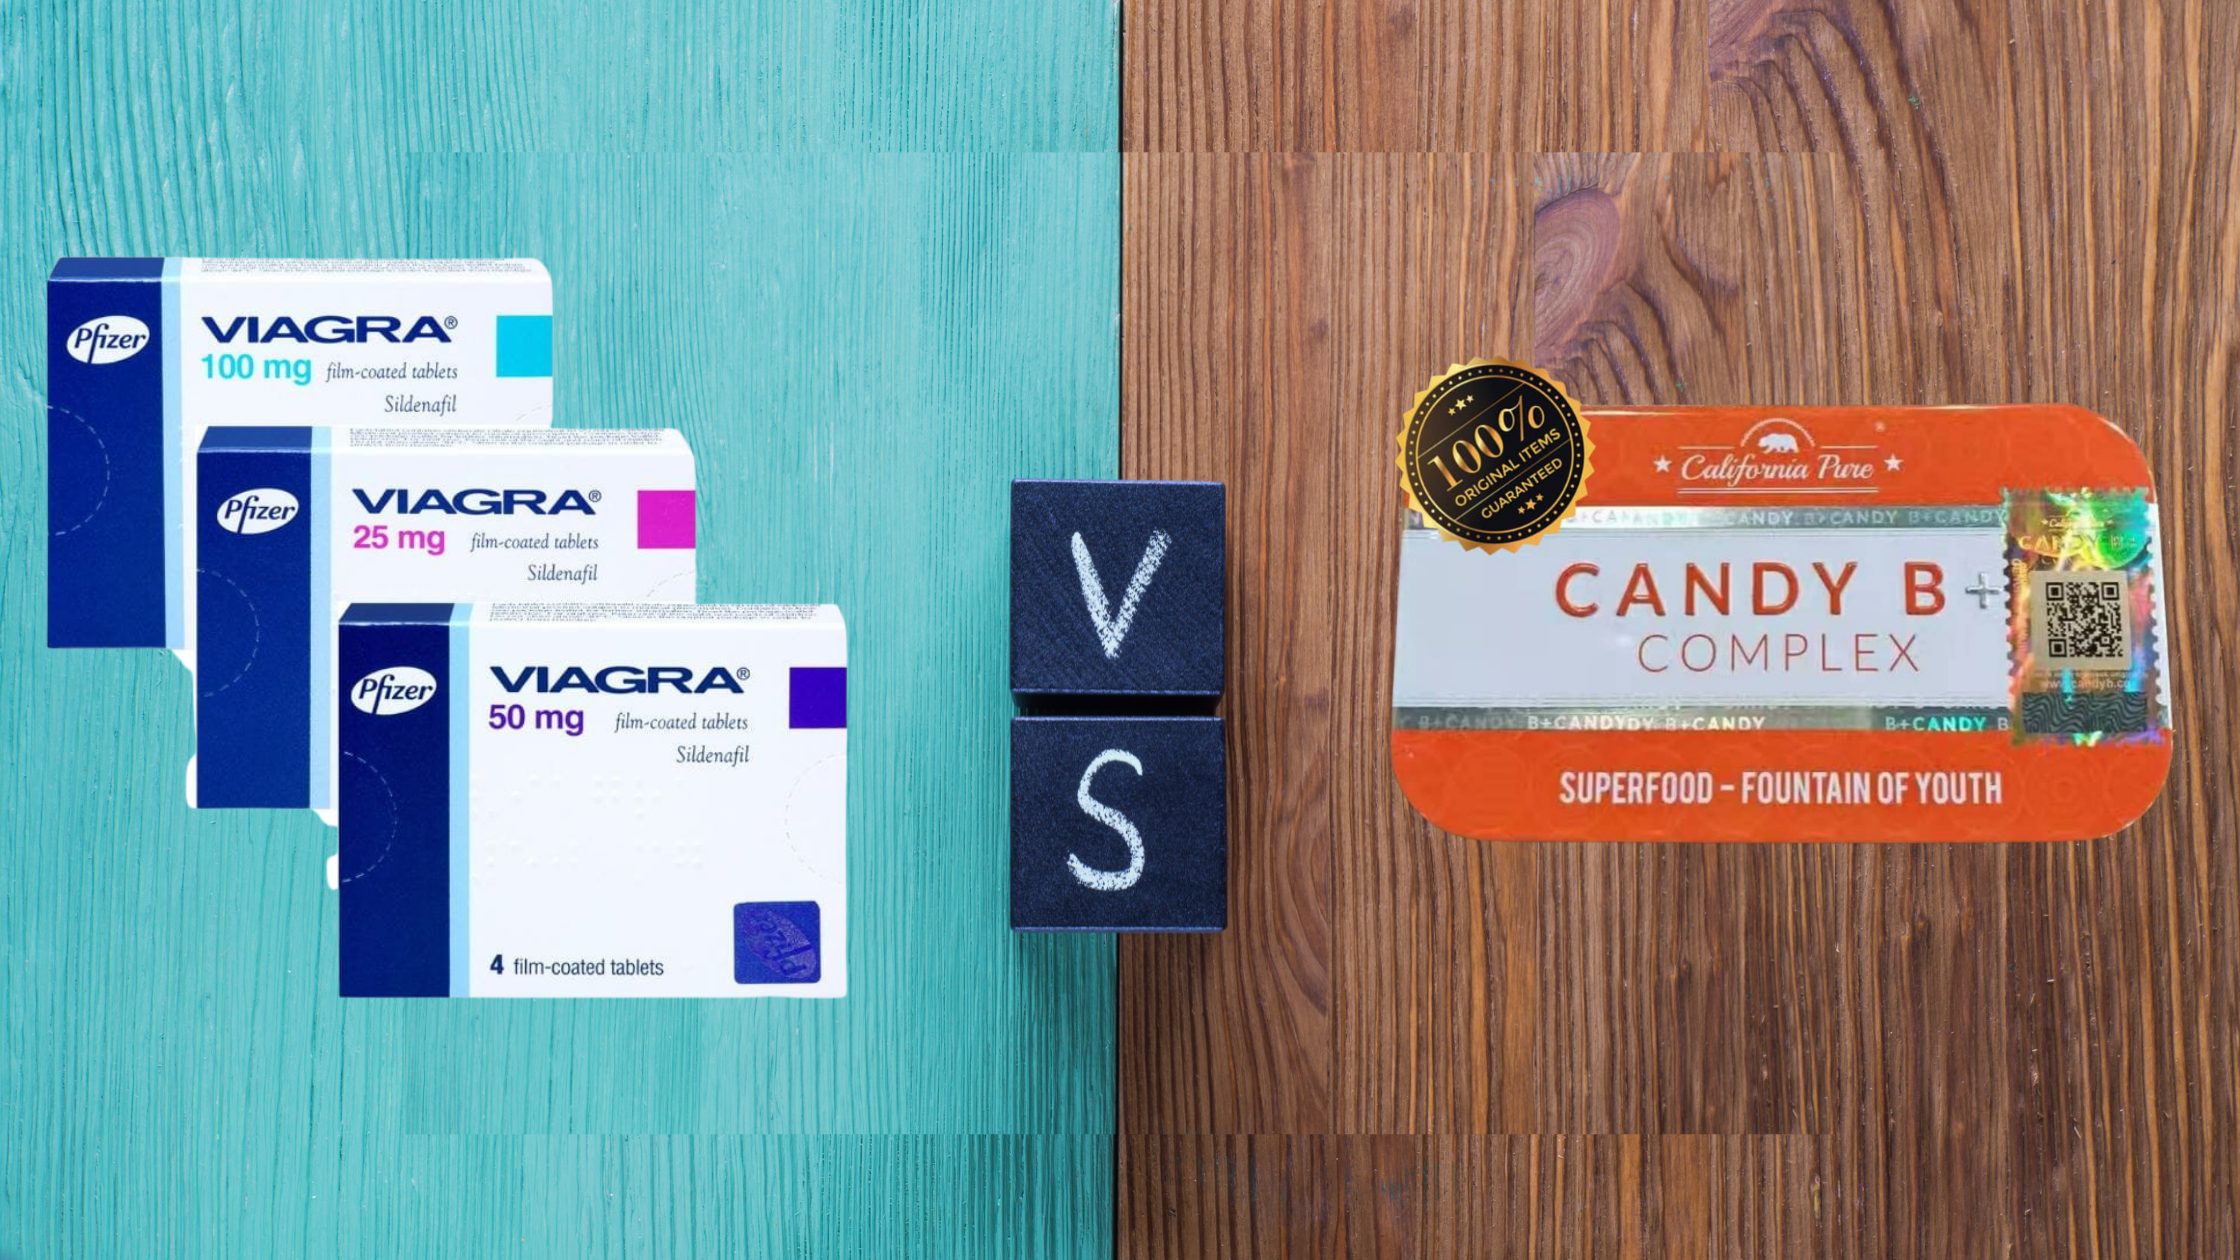 comparison between Candy B and Viagra